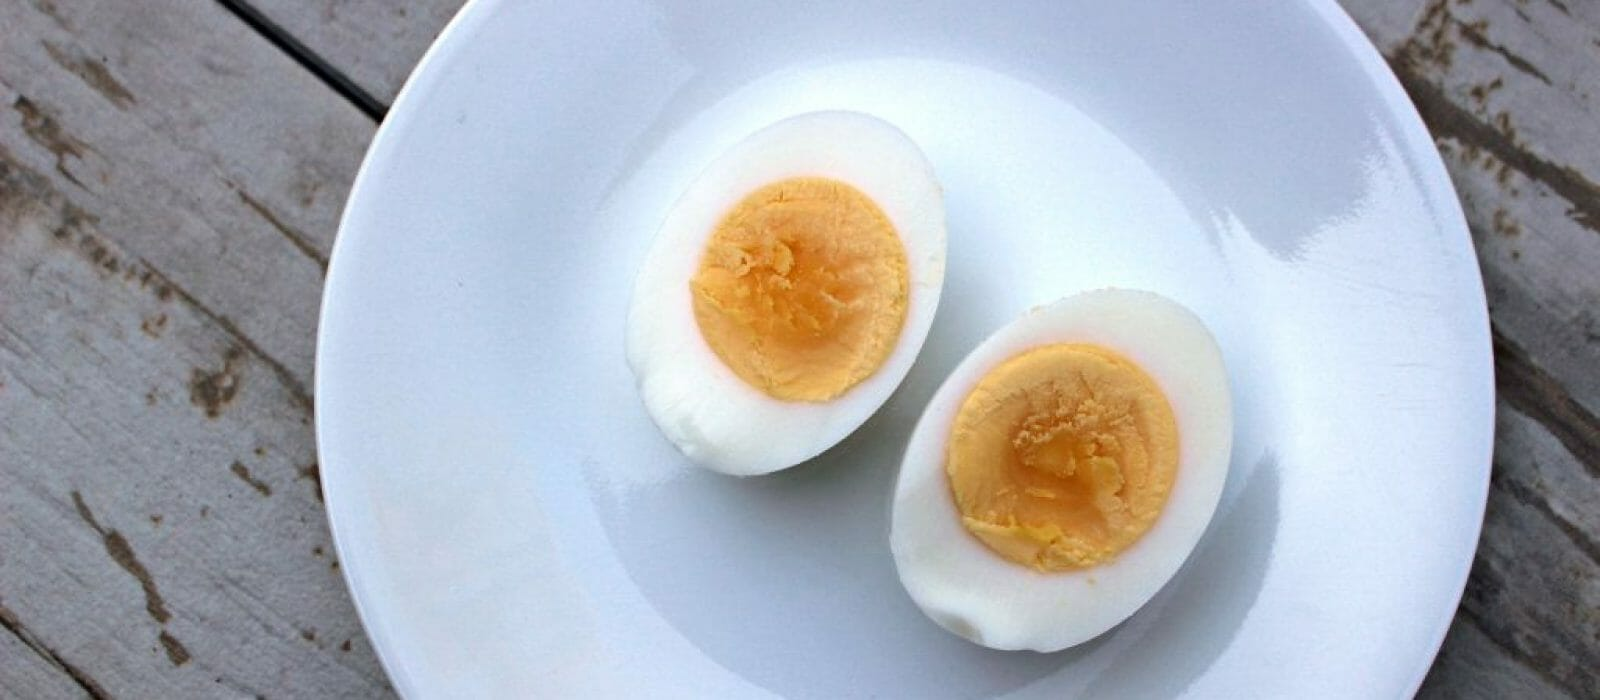 Two Hard Boiled Eggs